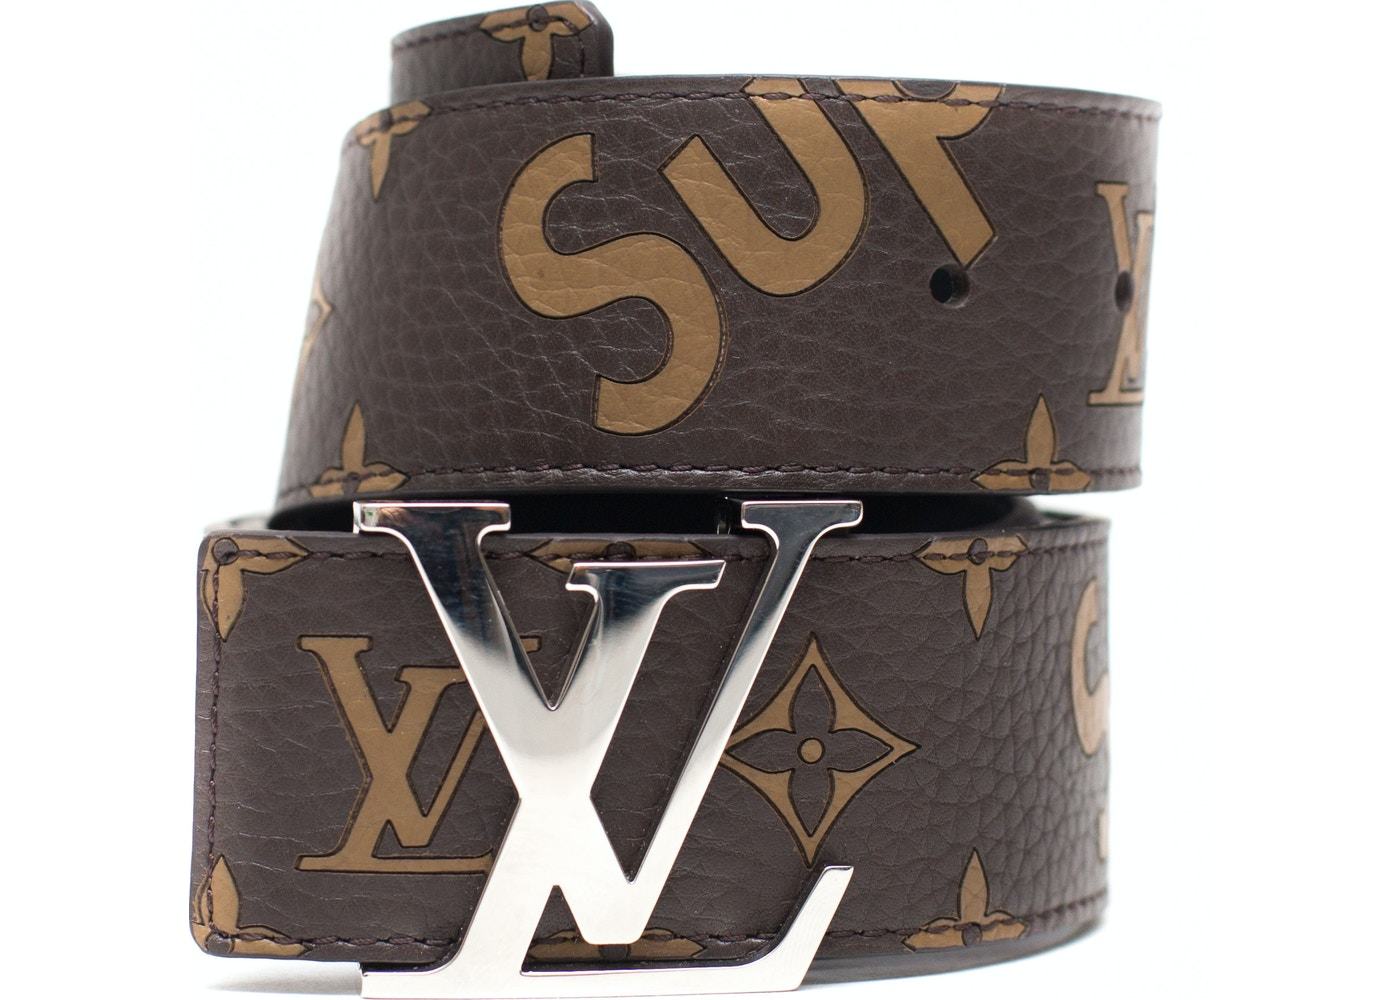 86281899db6d Sell. or Ask. Size  90 36. View All Bids. Louis Vuitton x Supreme Initiales  Belt ...